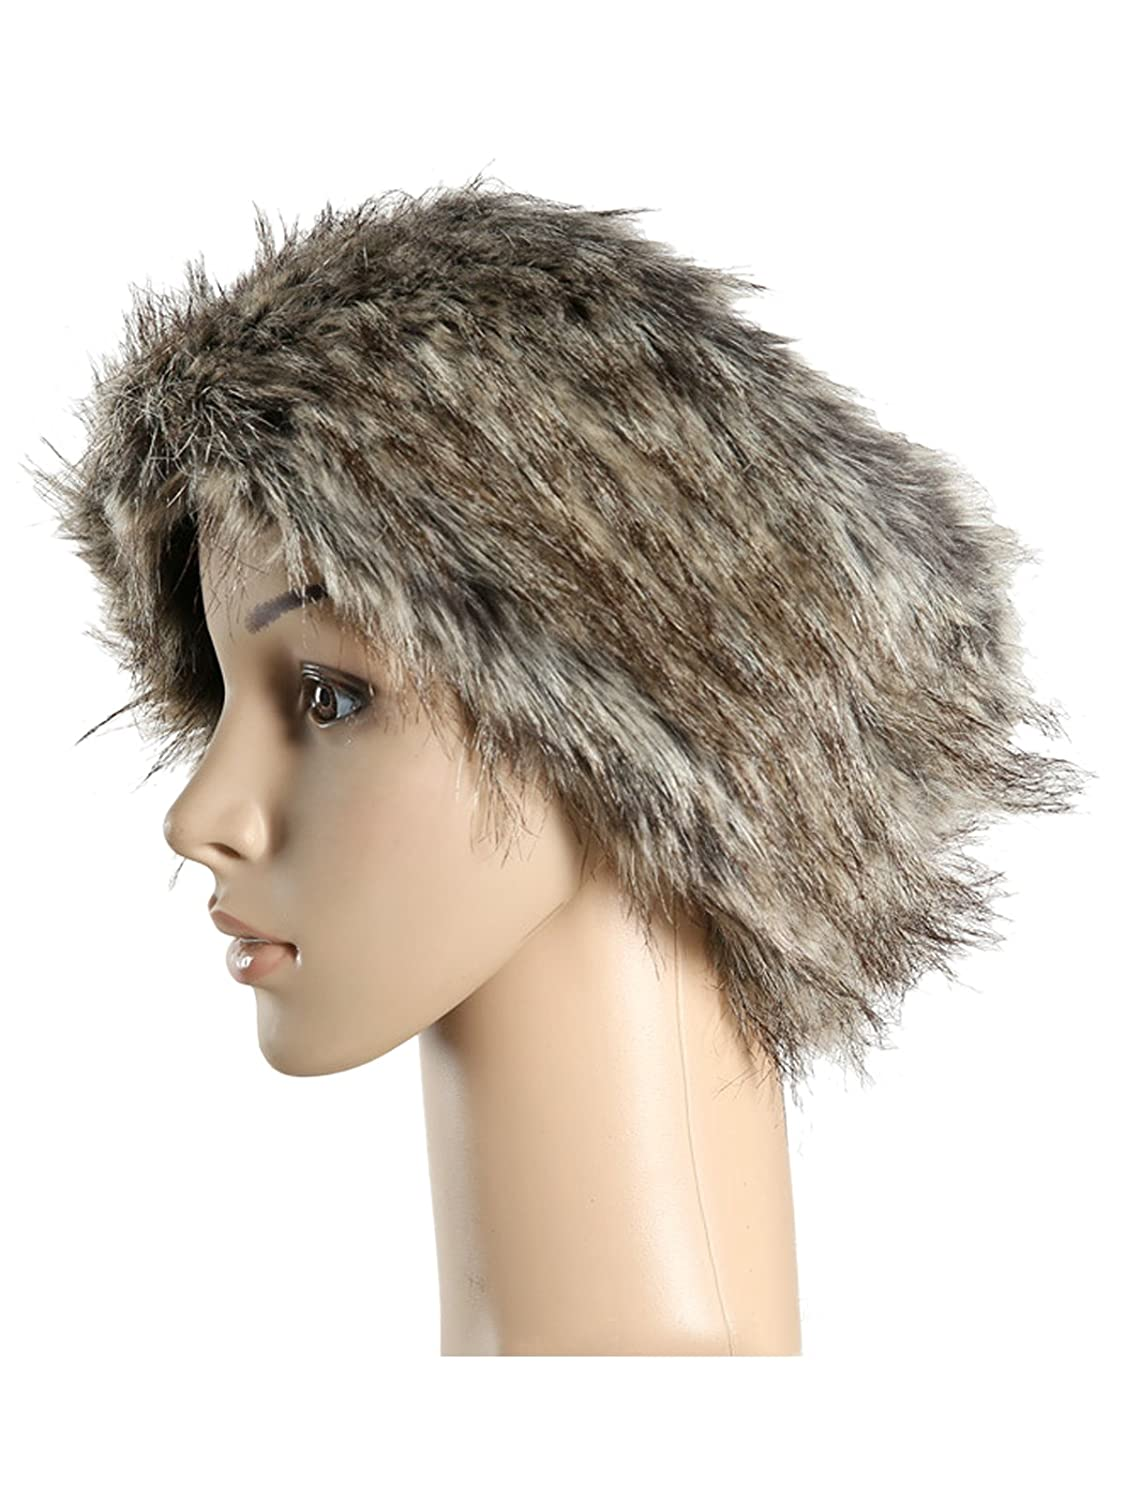 HnB Women Artificial Fur Headband for Winter Earwarmer Earmuff Ski Hat